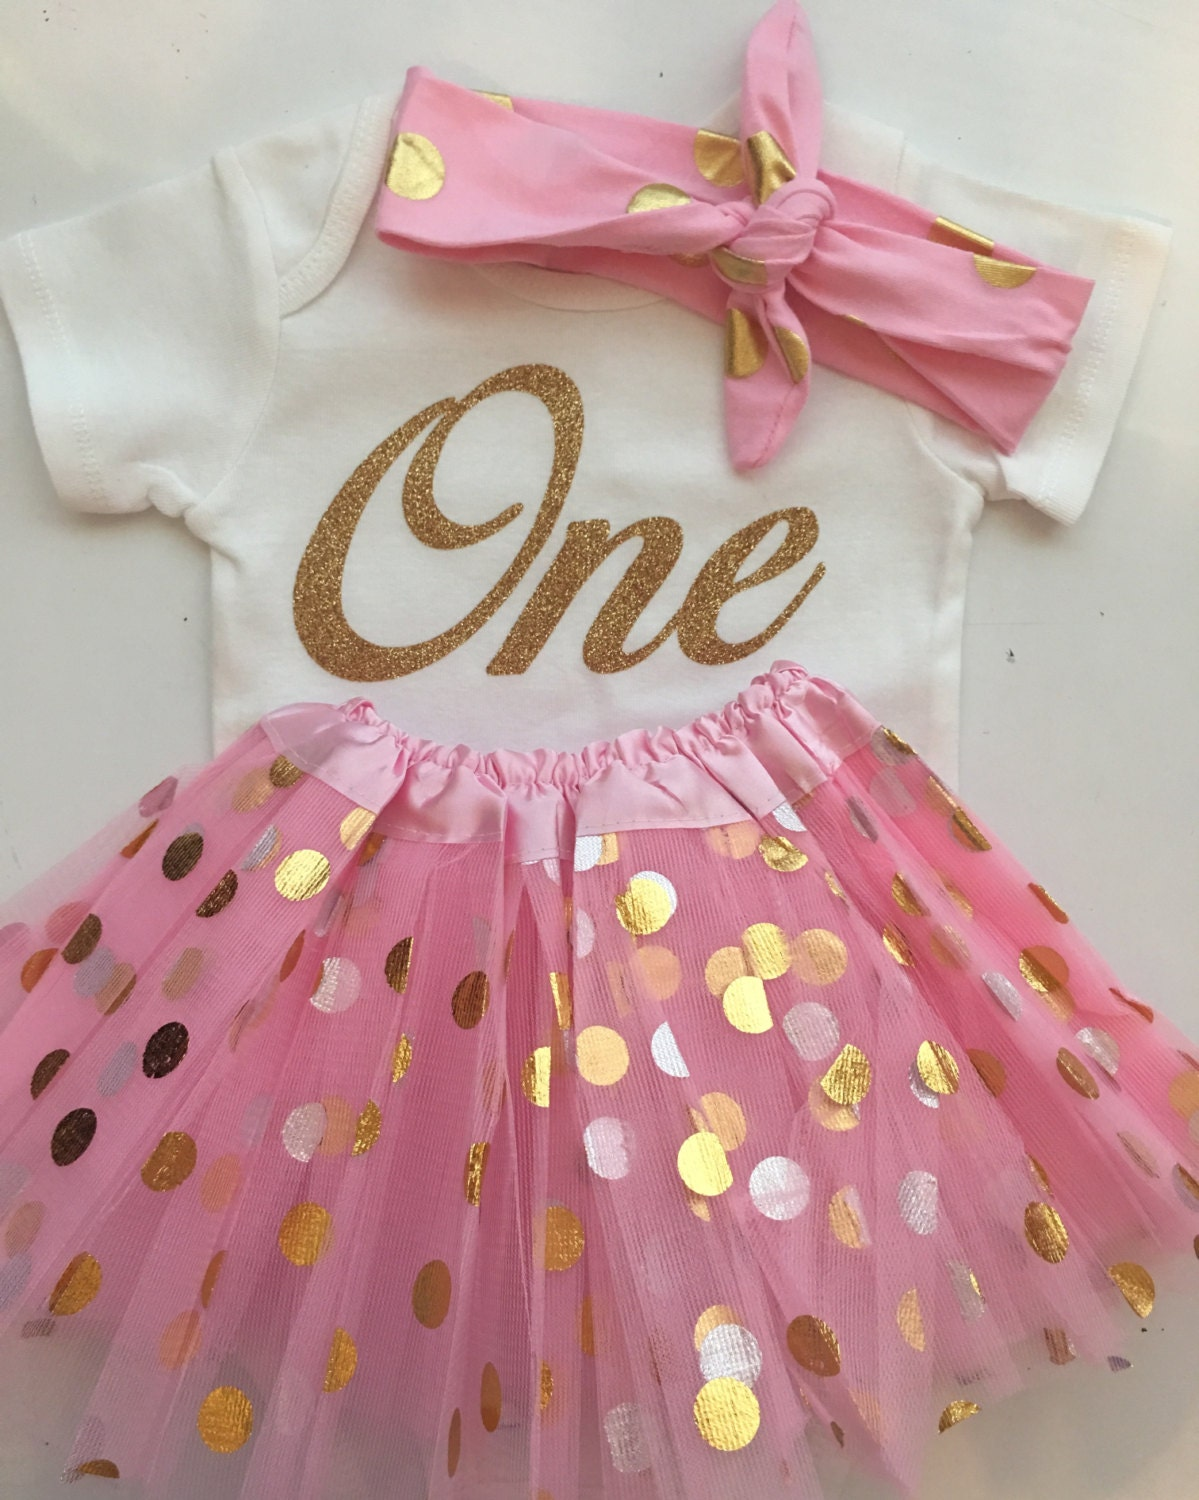 Baby Girl 1st Birthday 2nd Birthday Outfit Smash Cake Outfit 1st